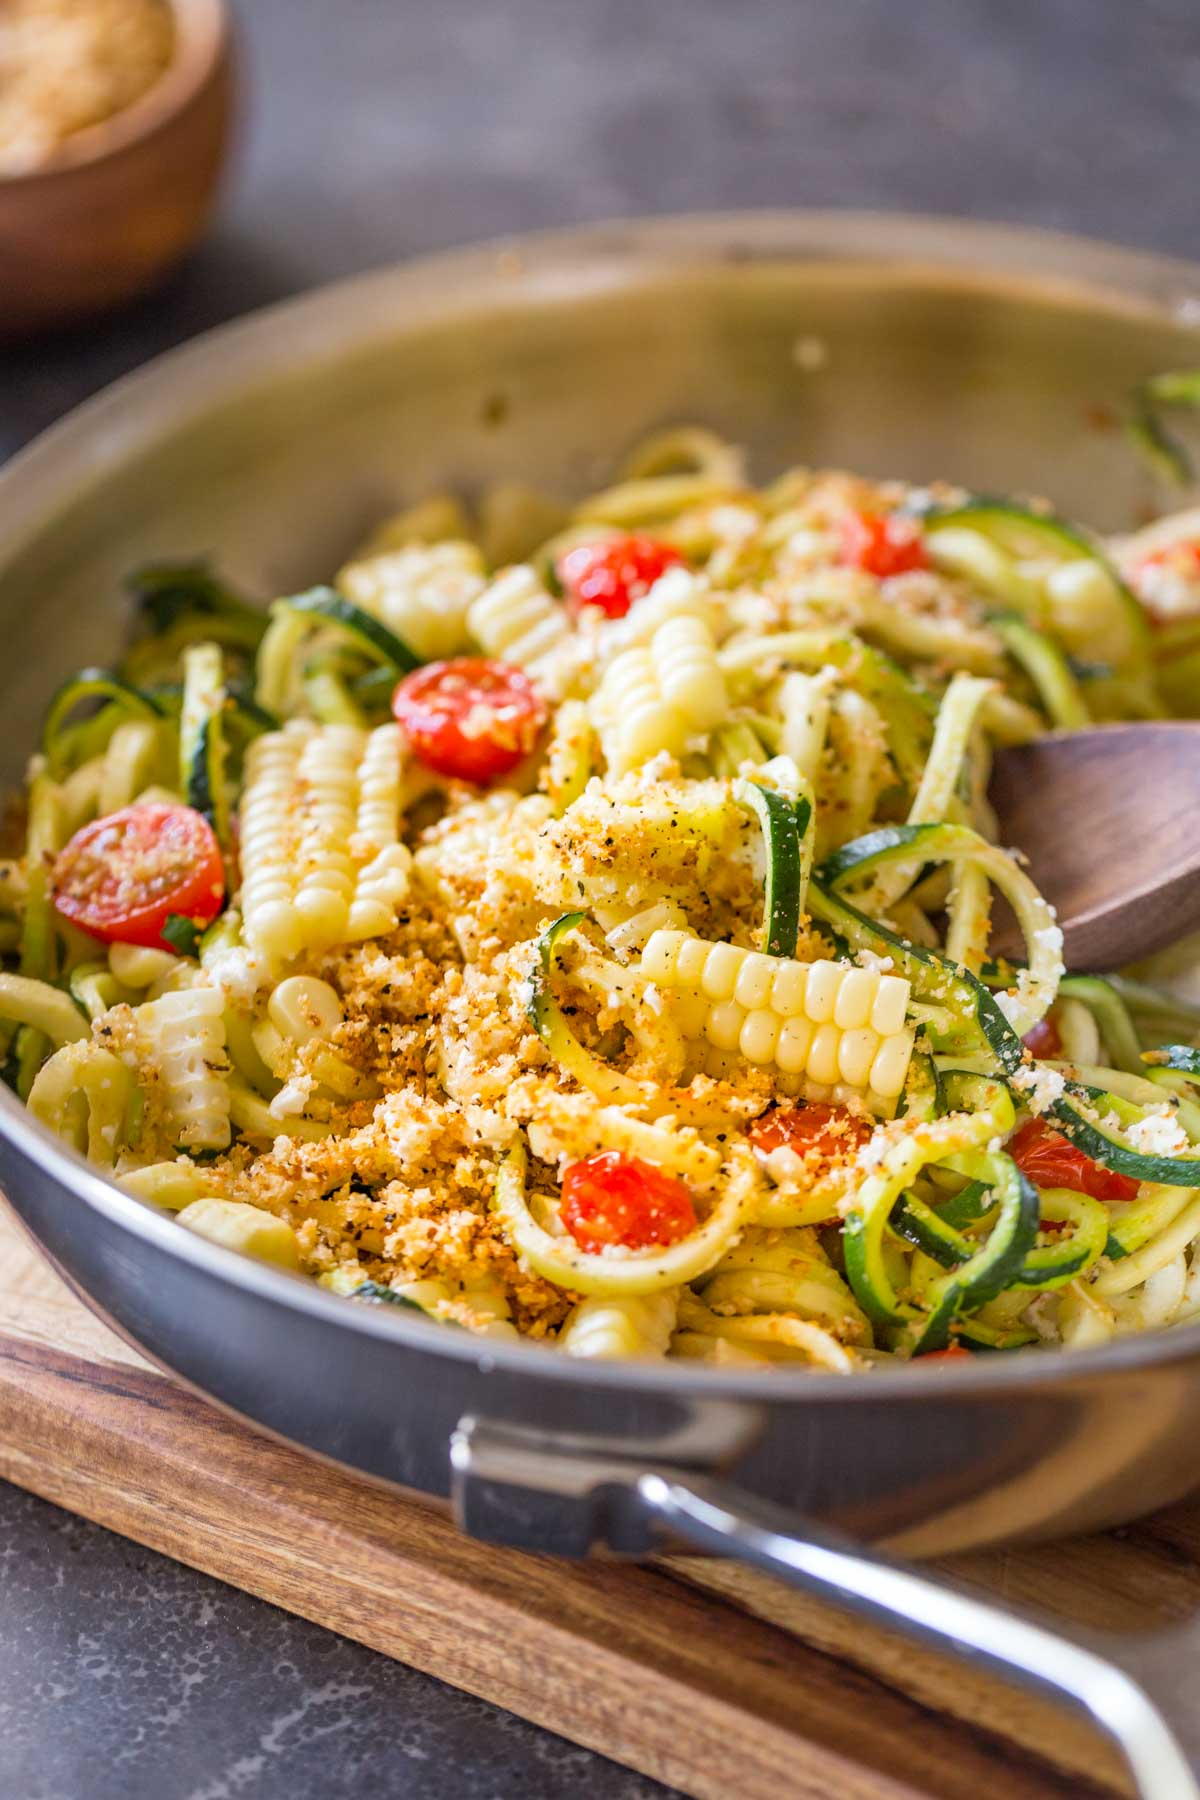 Sweet corn cut off the cob, red ripe tomatoes, and zucchini are the stars in my latest obsession. Topped with creamy feta and toasted Panko, this dish offers the best of the best!